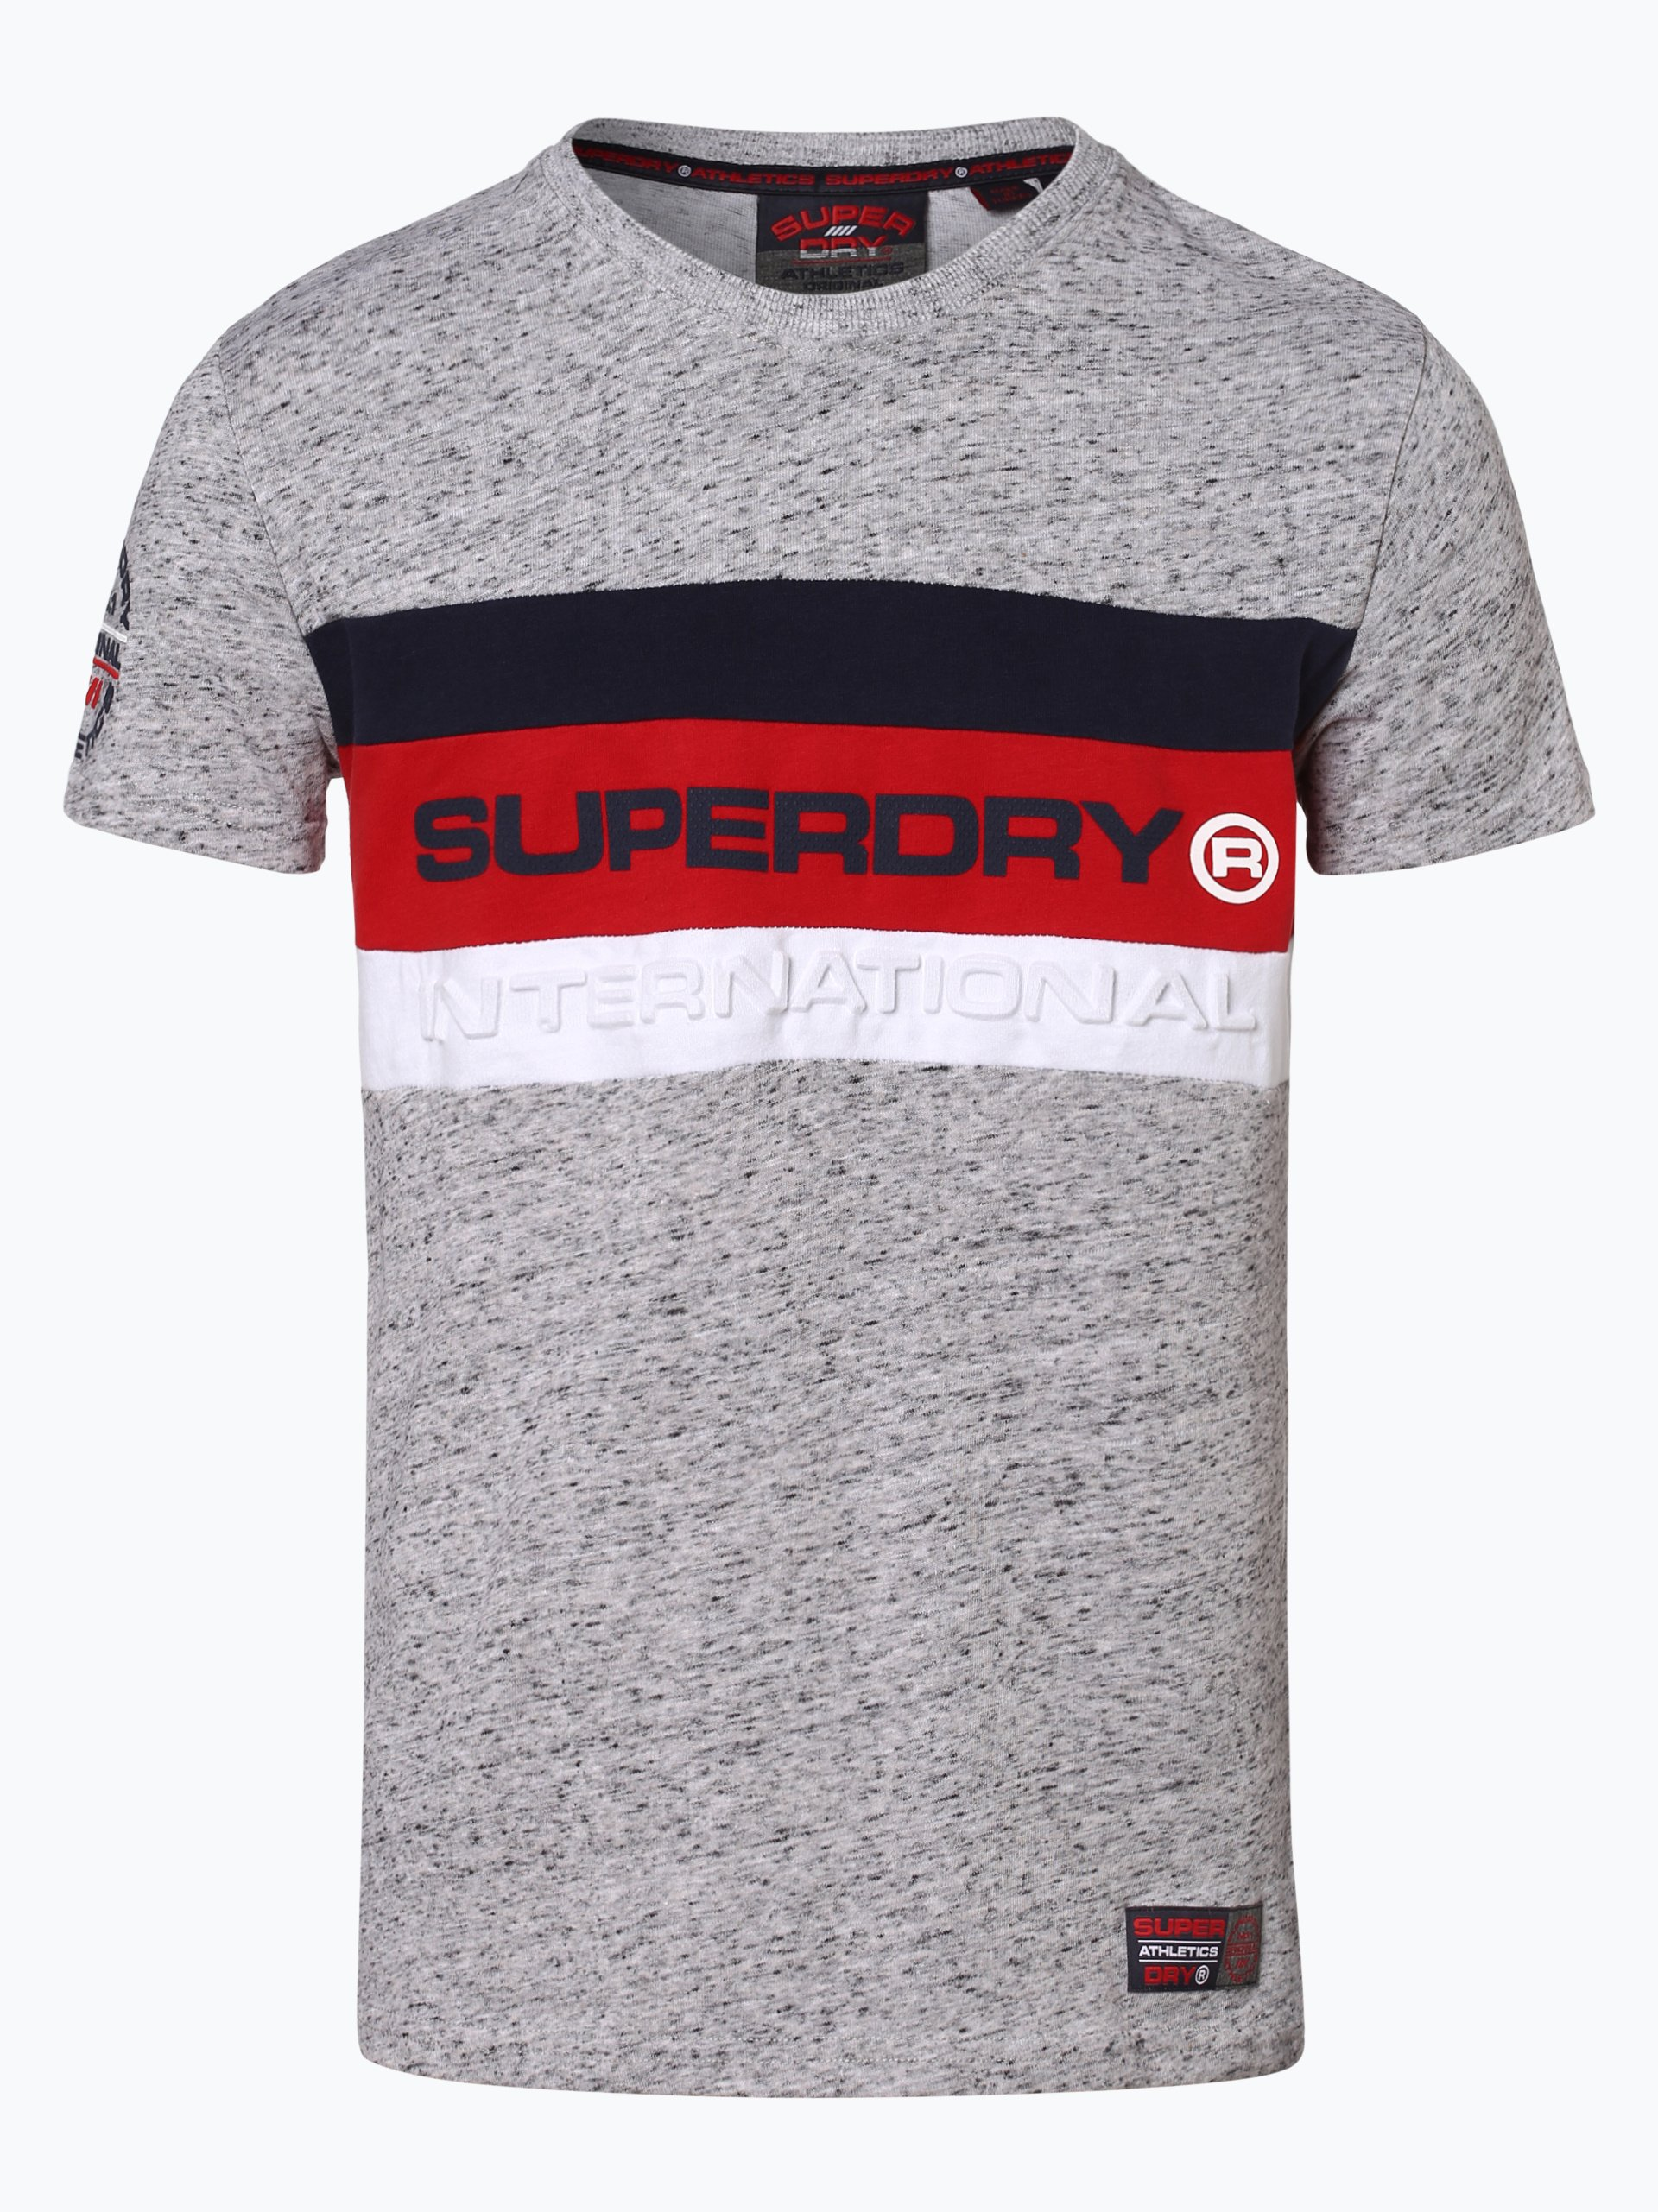 Superdry T-shirt męski